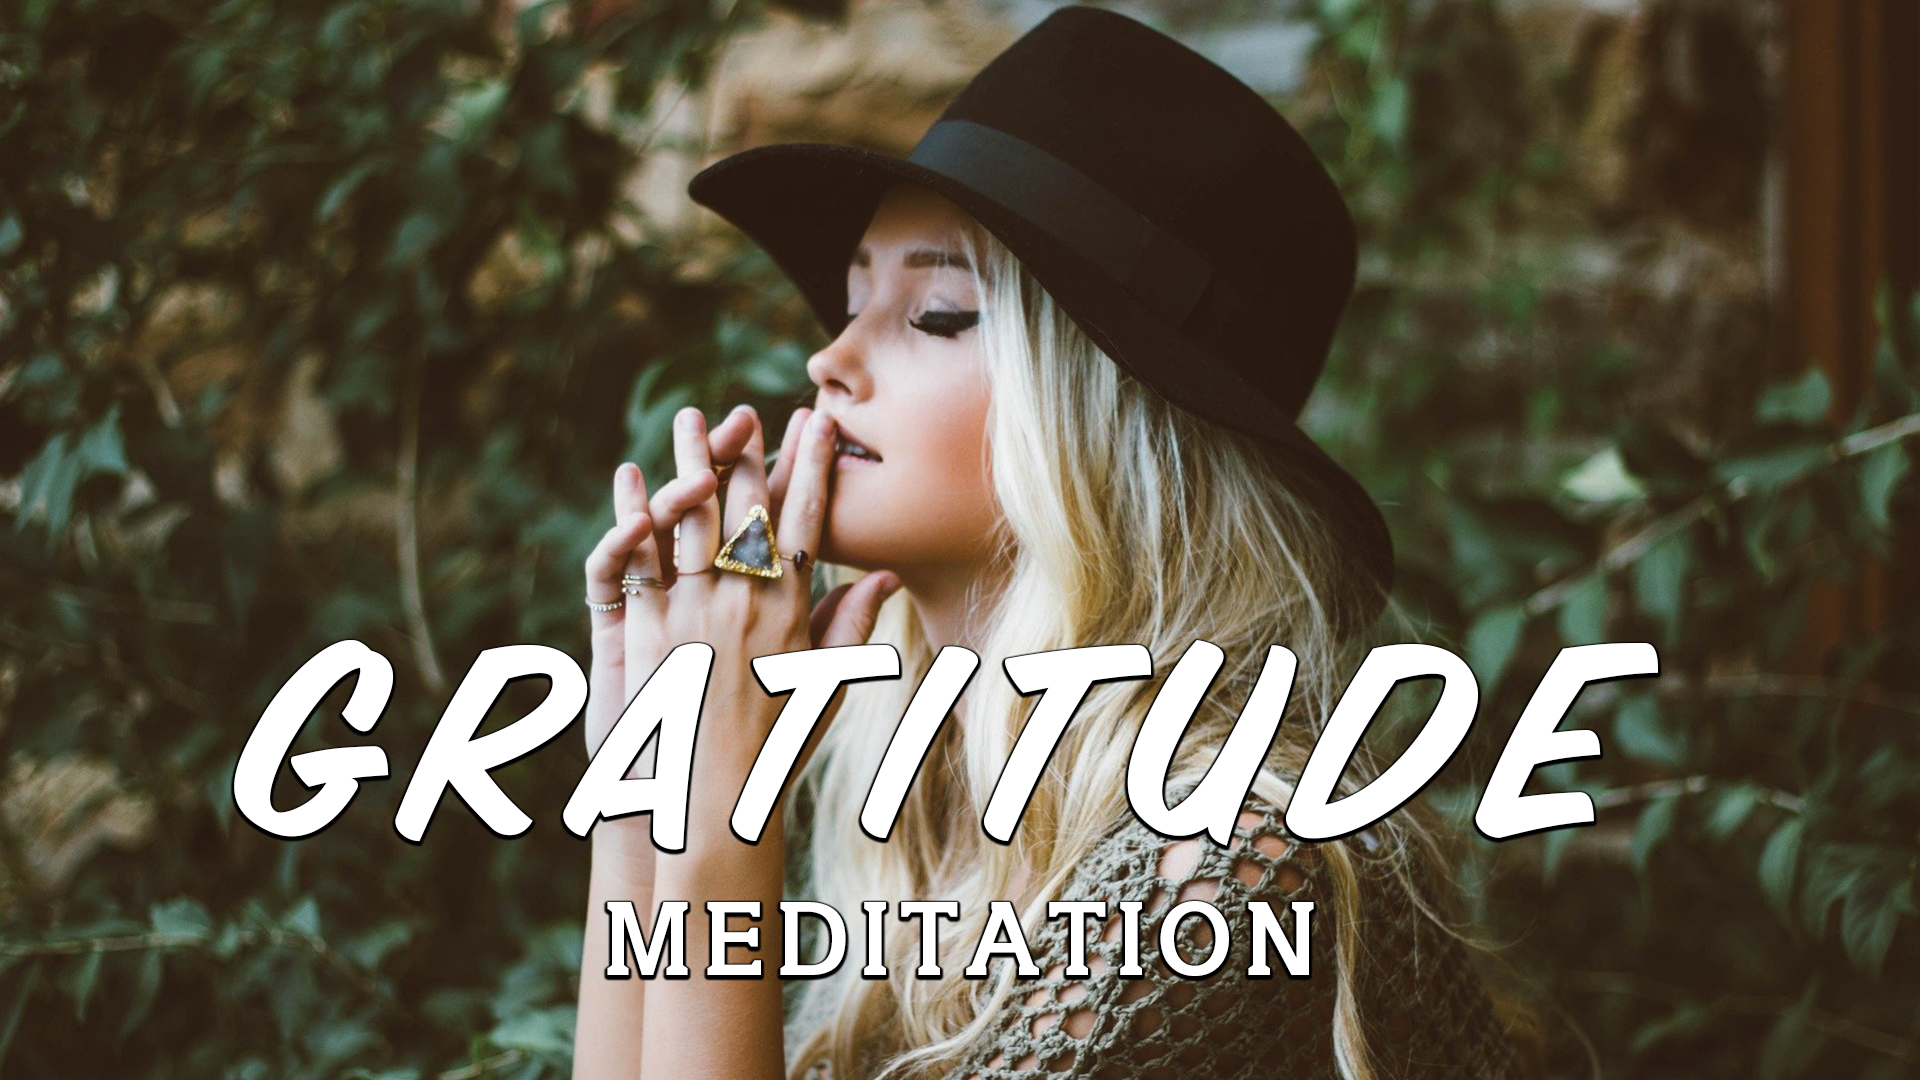 Guided Meditation on Gratitude - Relaxing Music - Attract Abundance & Miracle